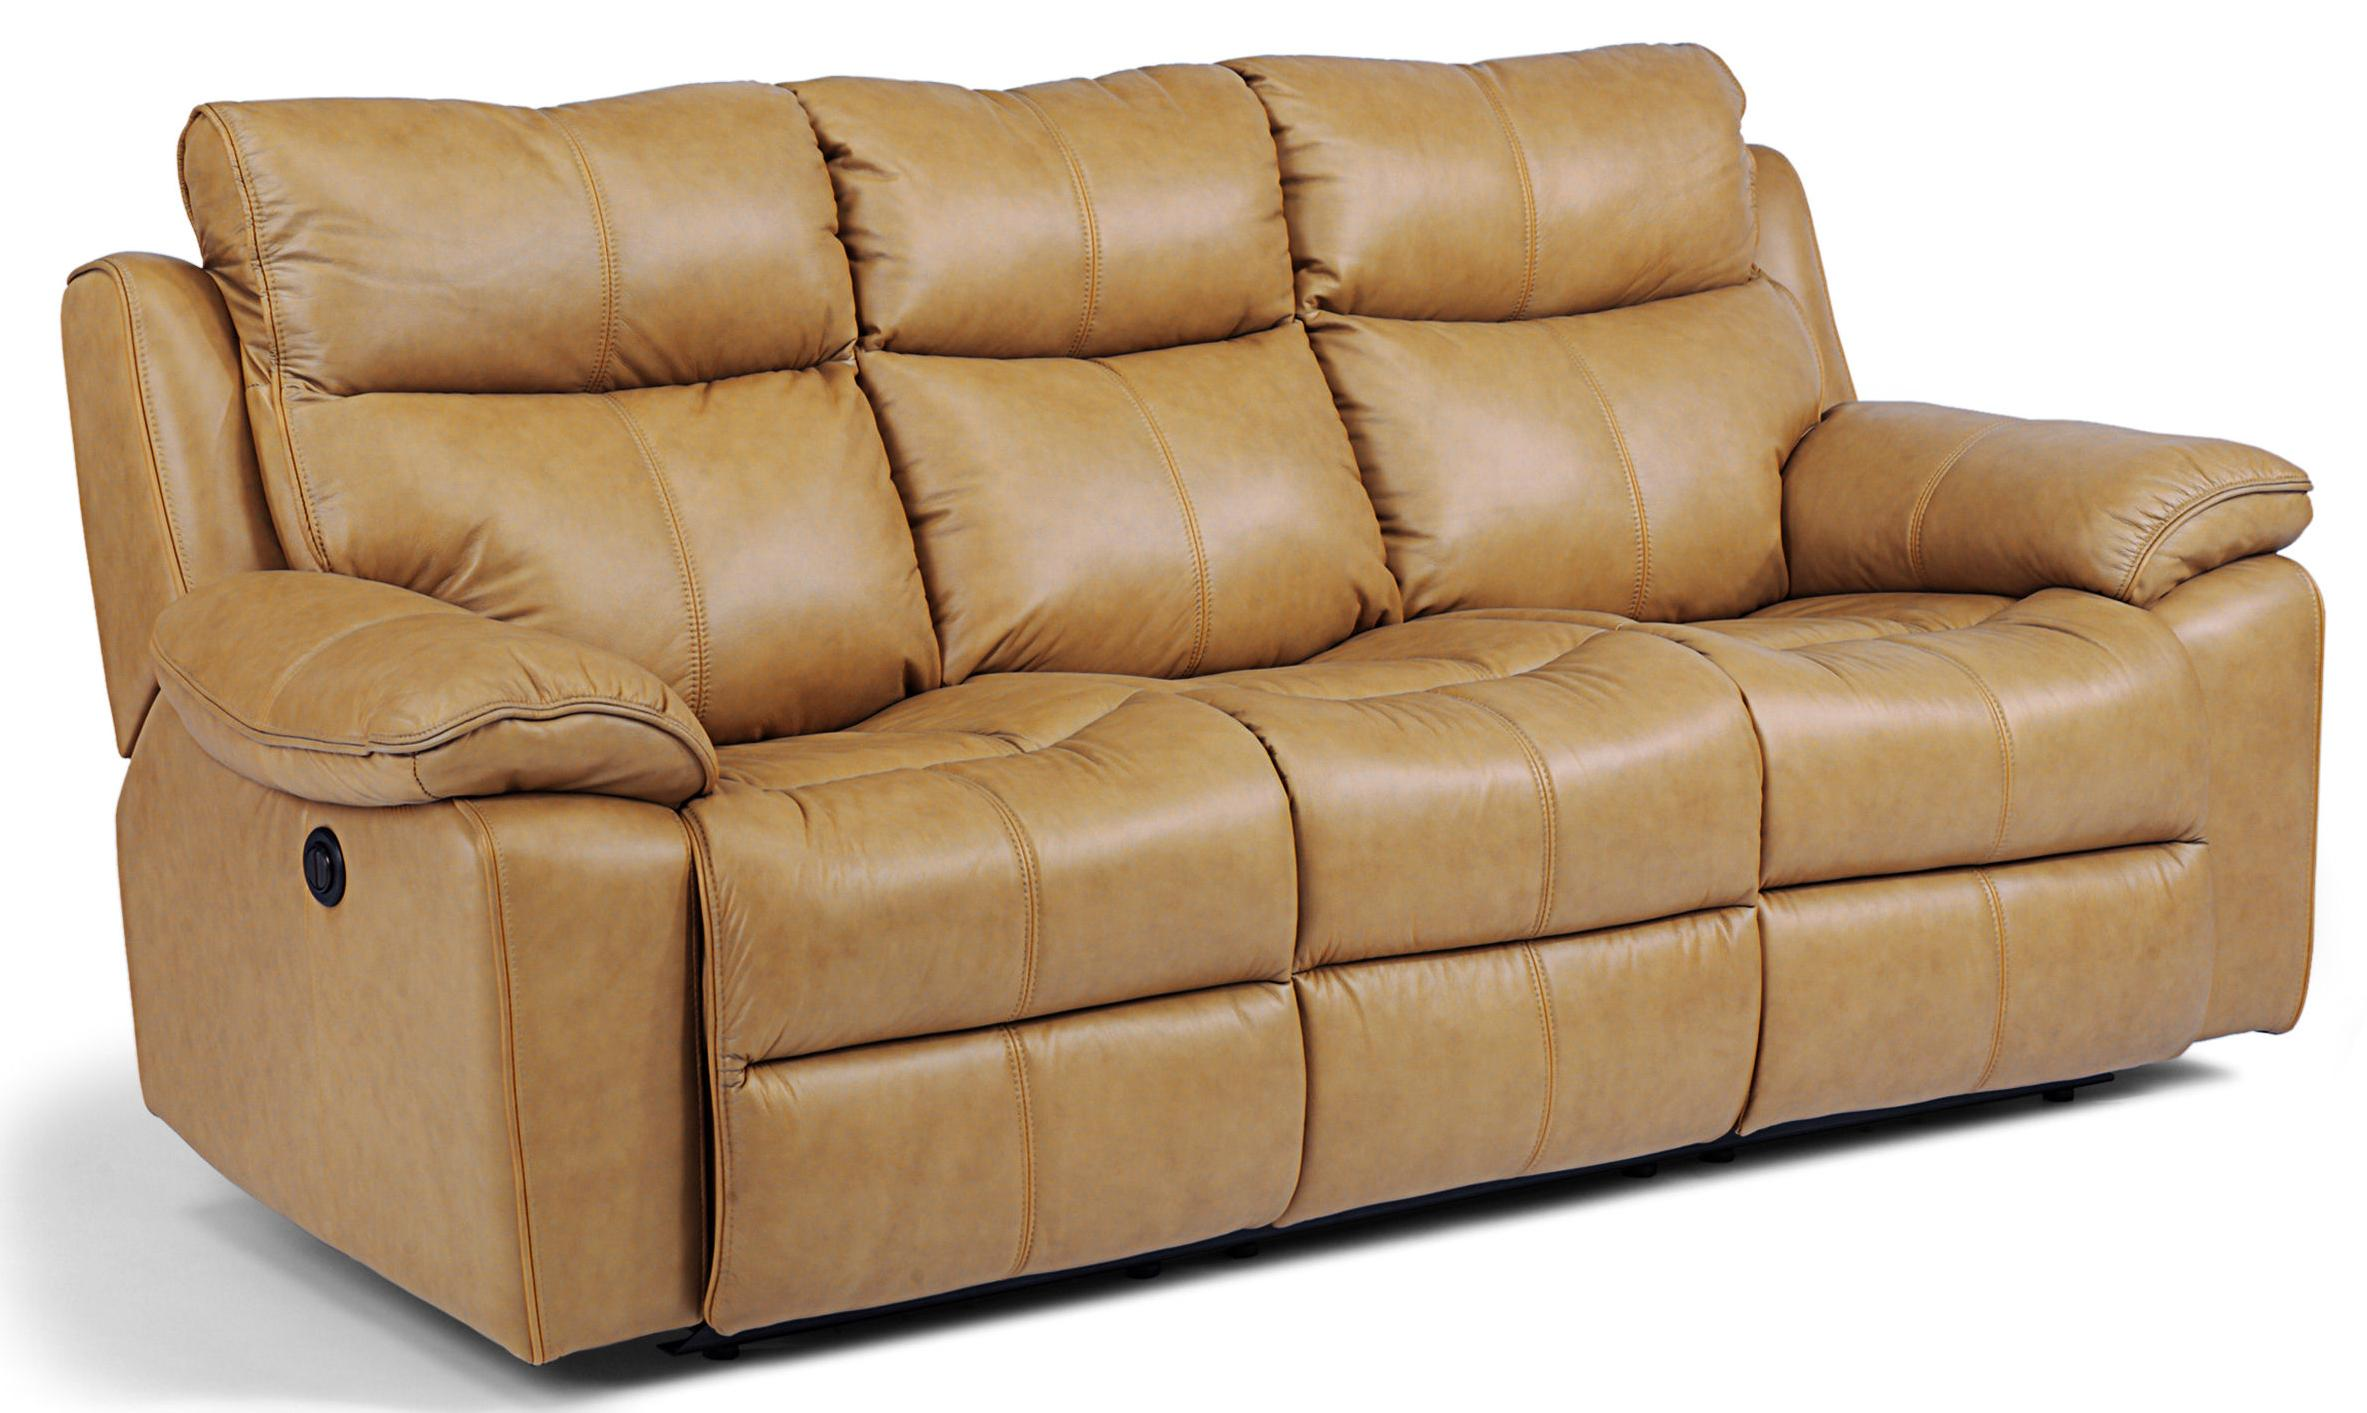 ardmore stationary sofa bettsofa schweiz flexsteel latitudes julio power reclining with bustle backs by